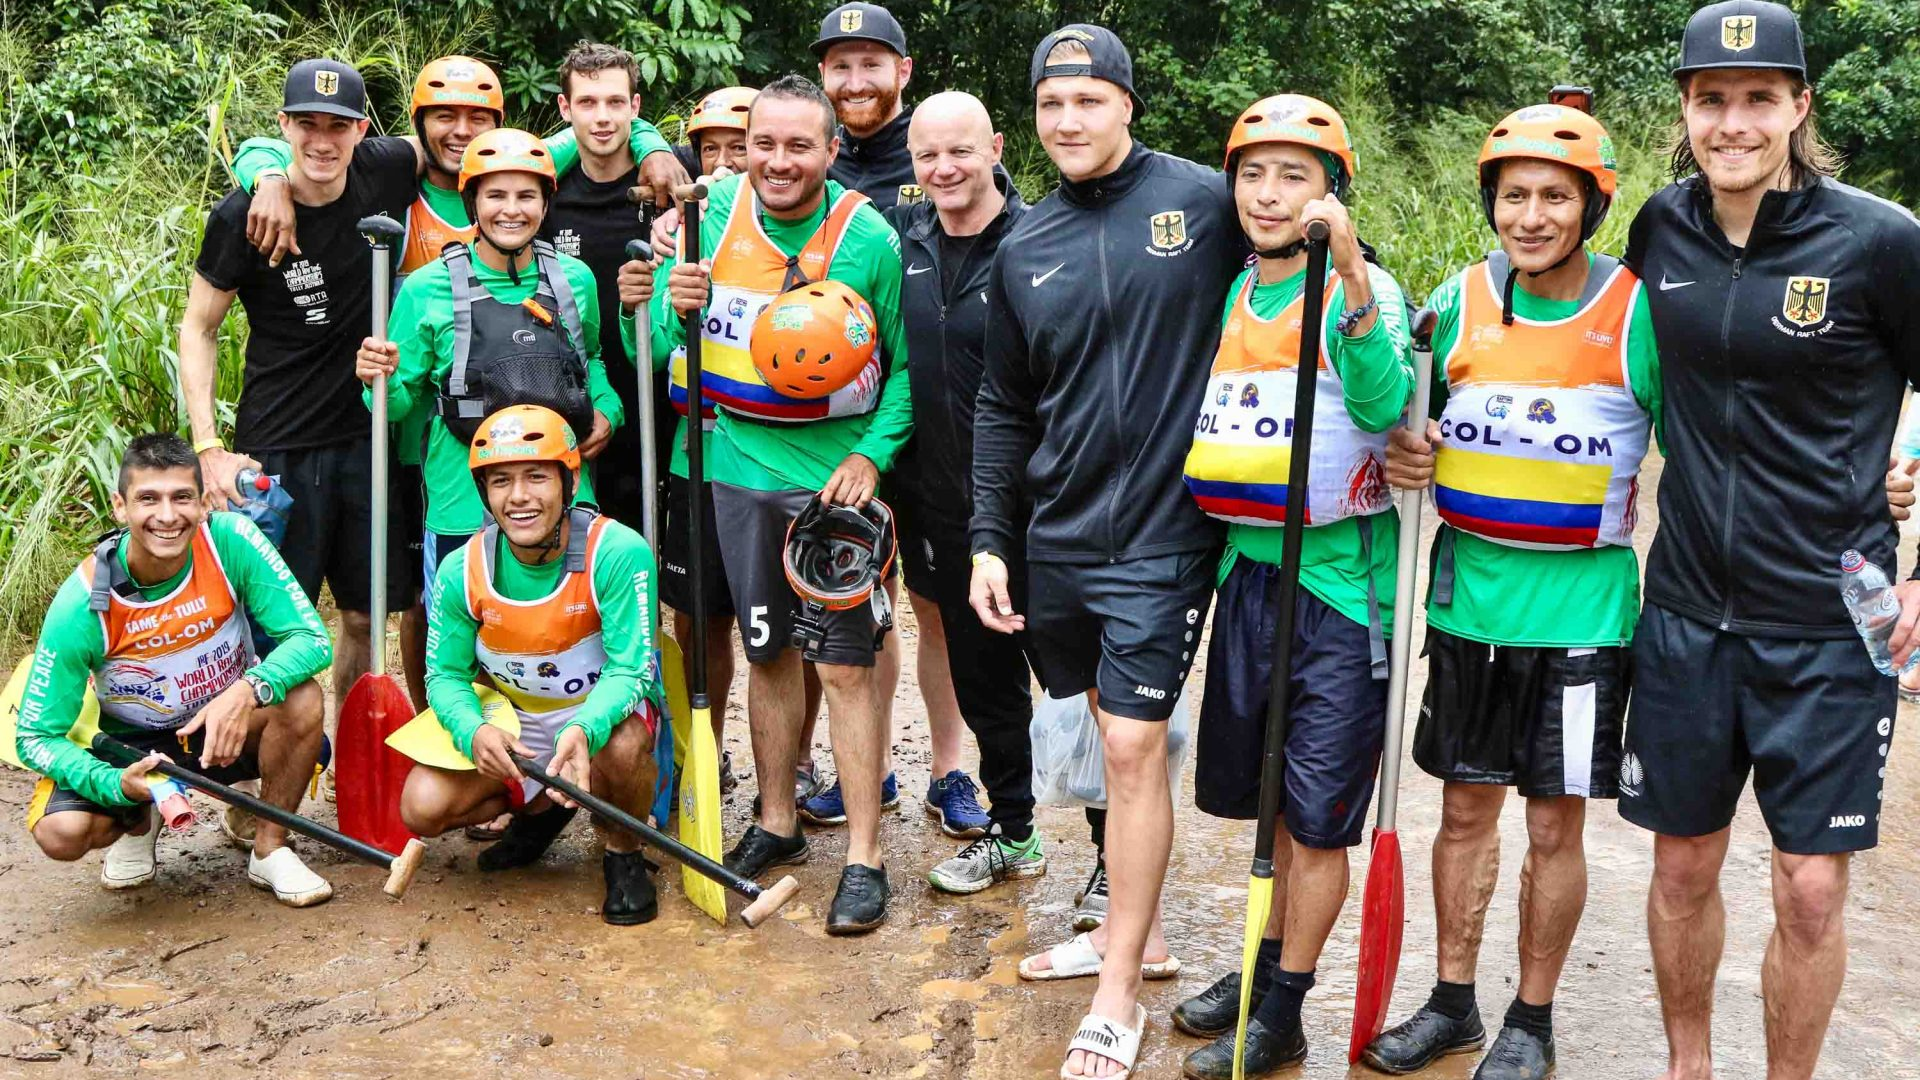 The Colombian and German teams at the World Rafting Championships; the Colombian team had found out they were going to be racing the German team.